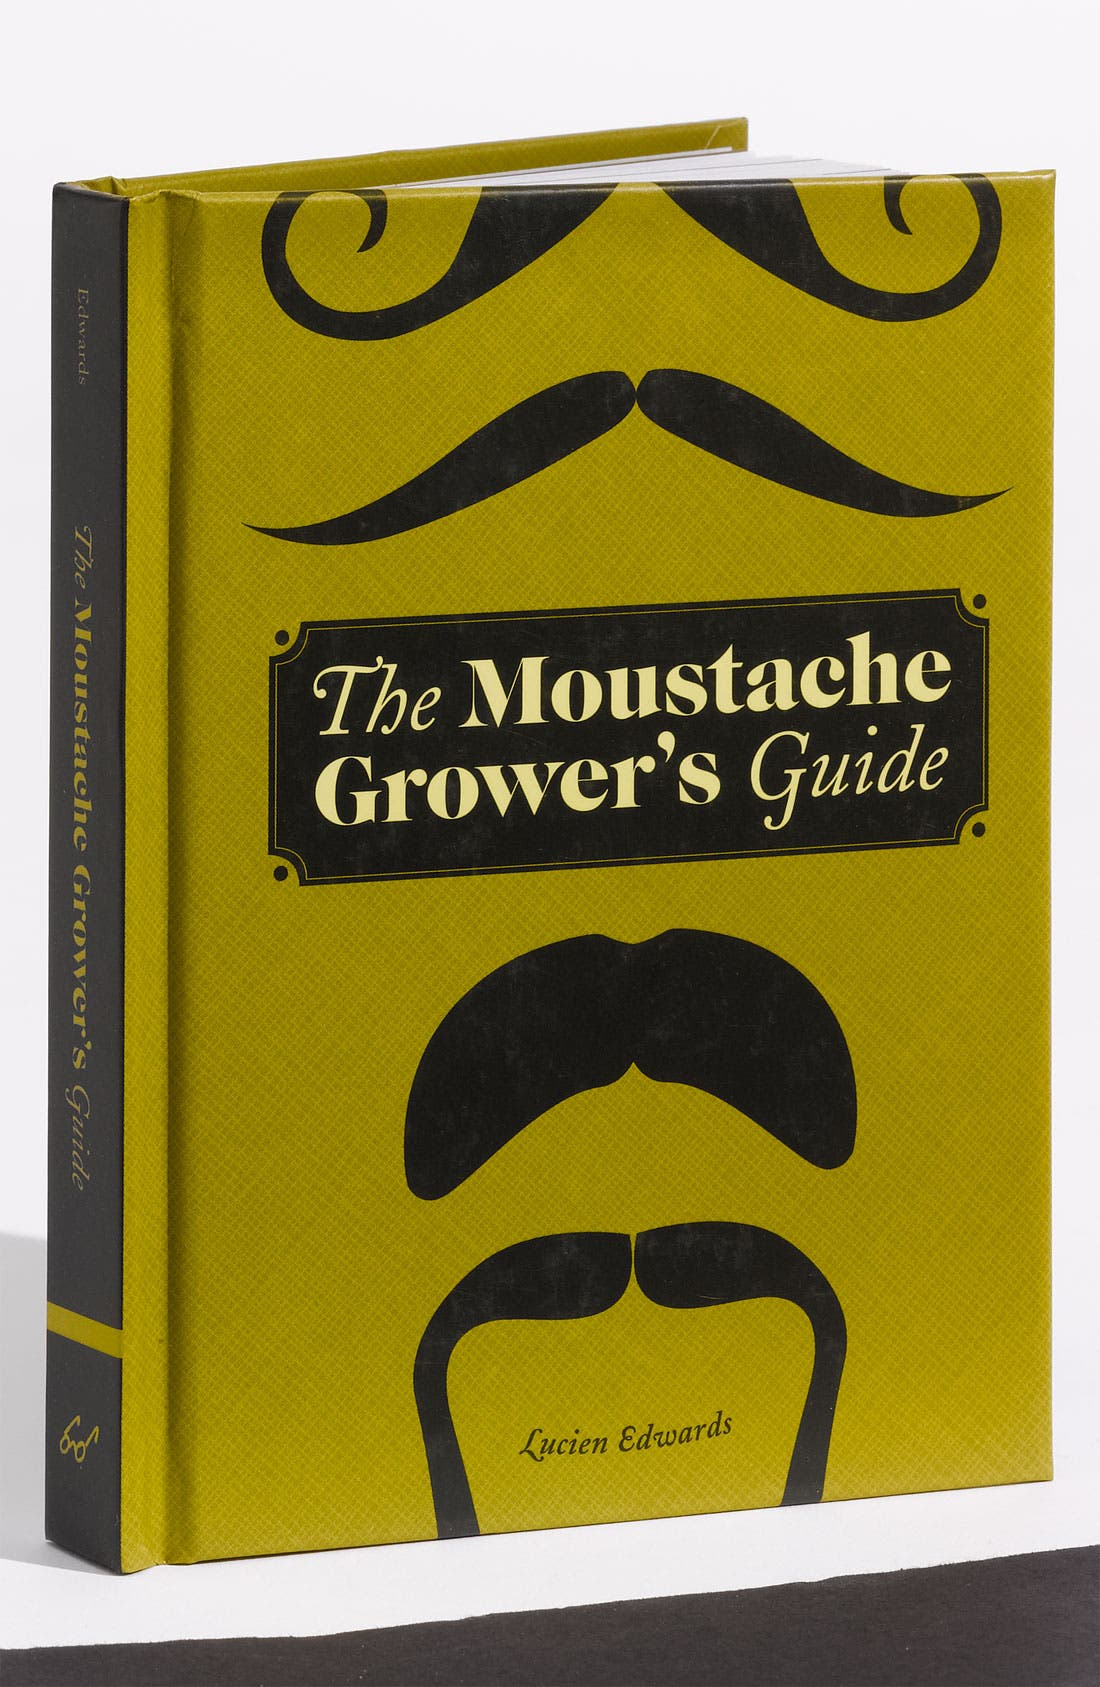 Alternate Image 1 Selected - Lucien Edwards 'The Moustache Grower's Guide' Book